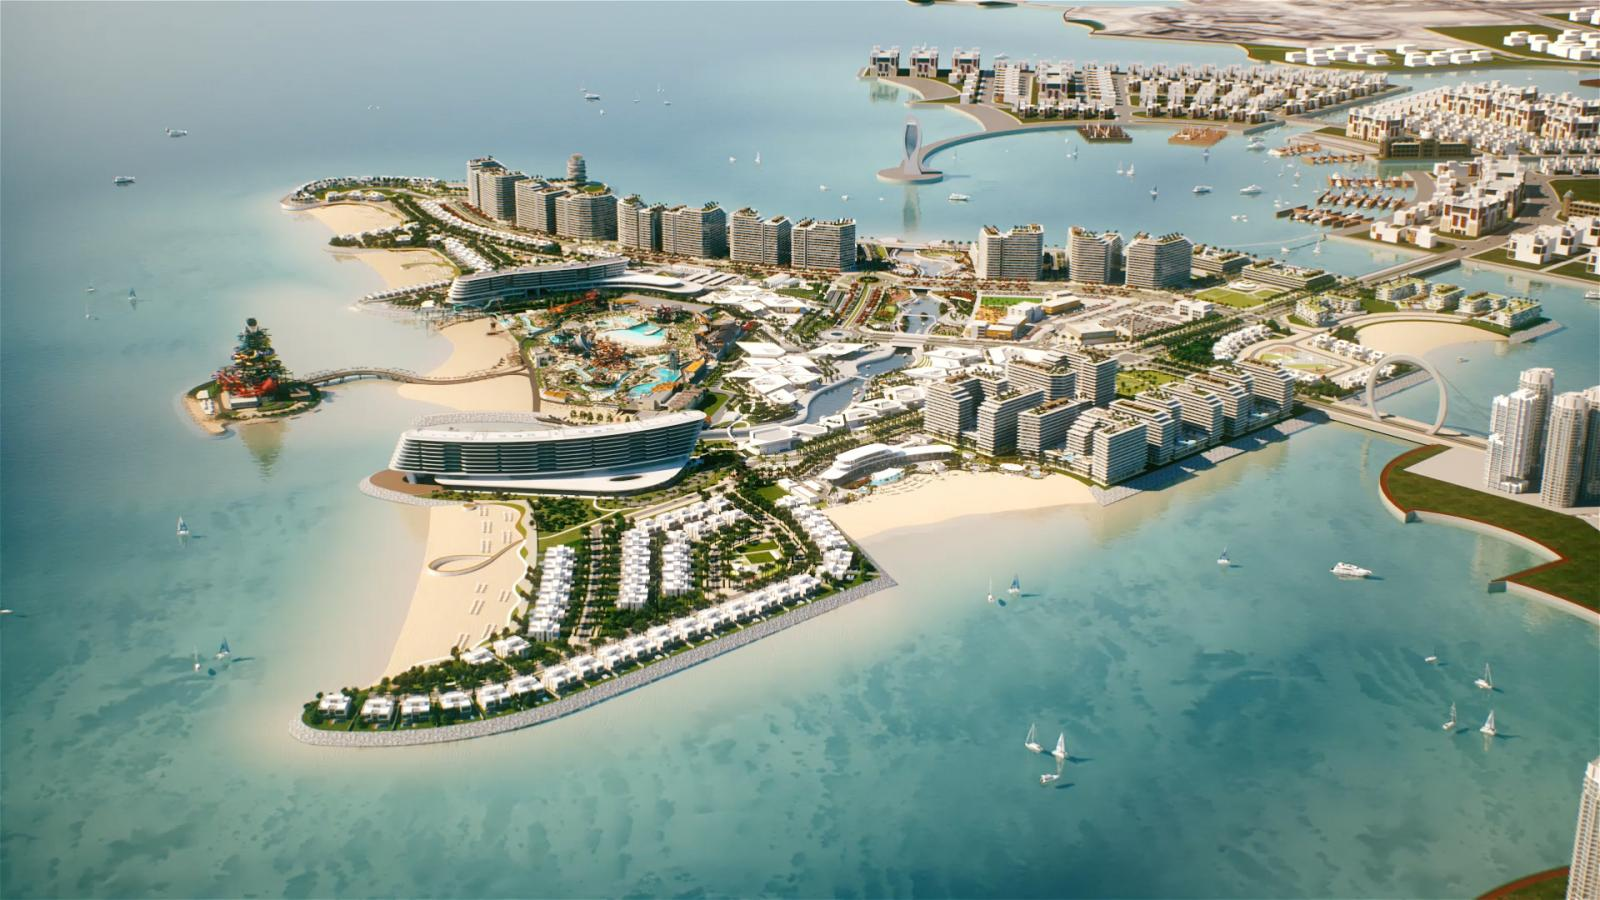 Qetaifan Island North to offer a new Edutainment experience in its Waterpark